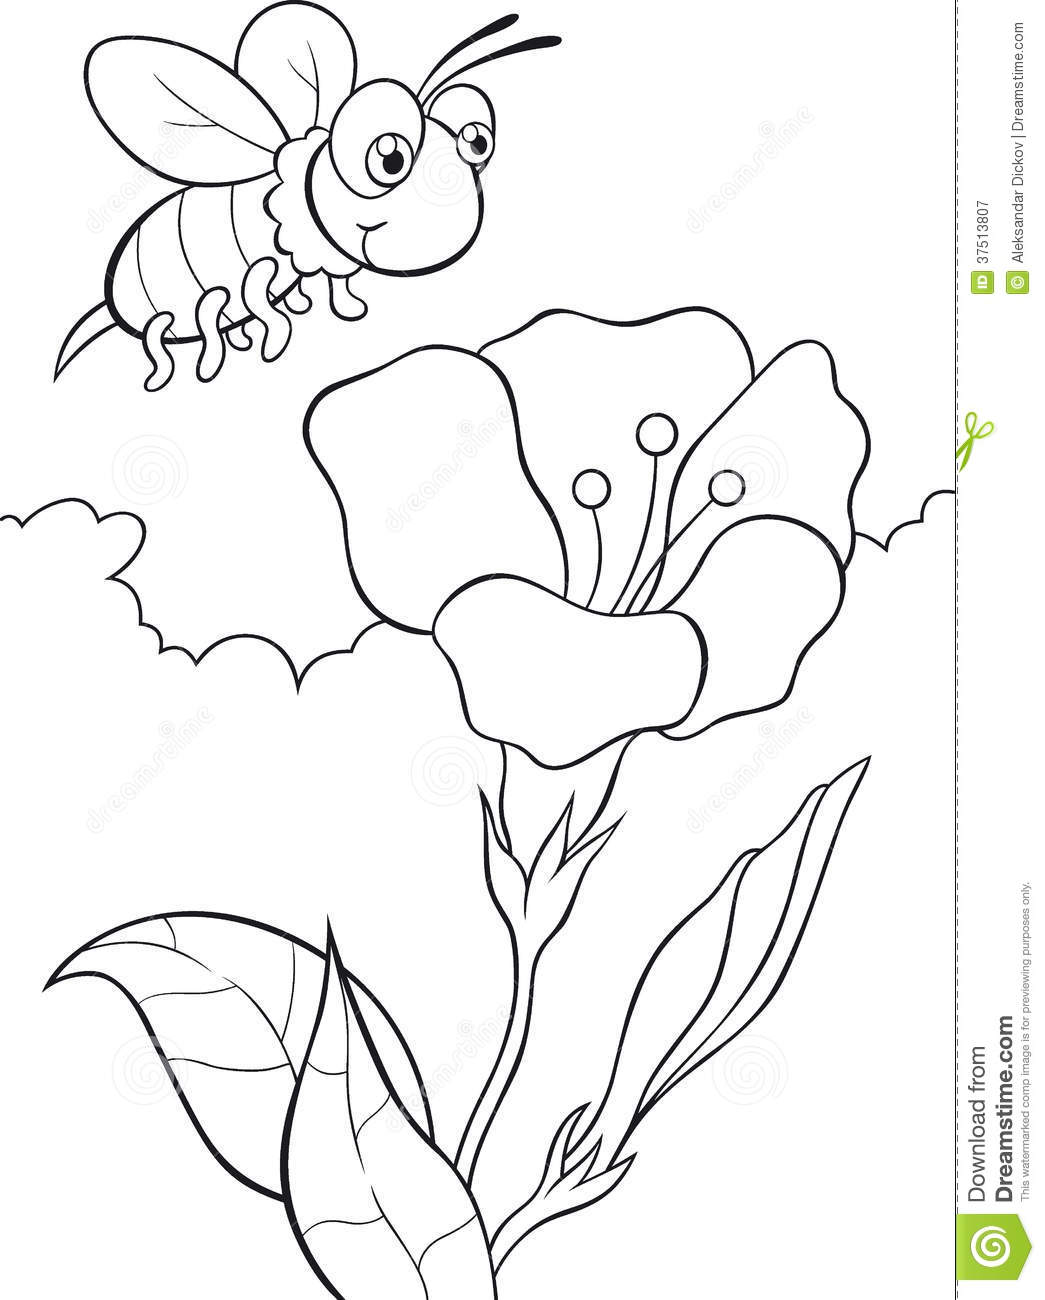 mrs honey coloring pages - photo#21